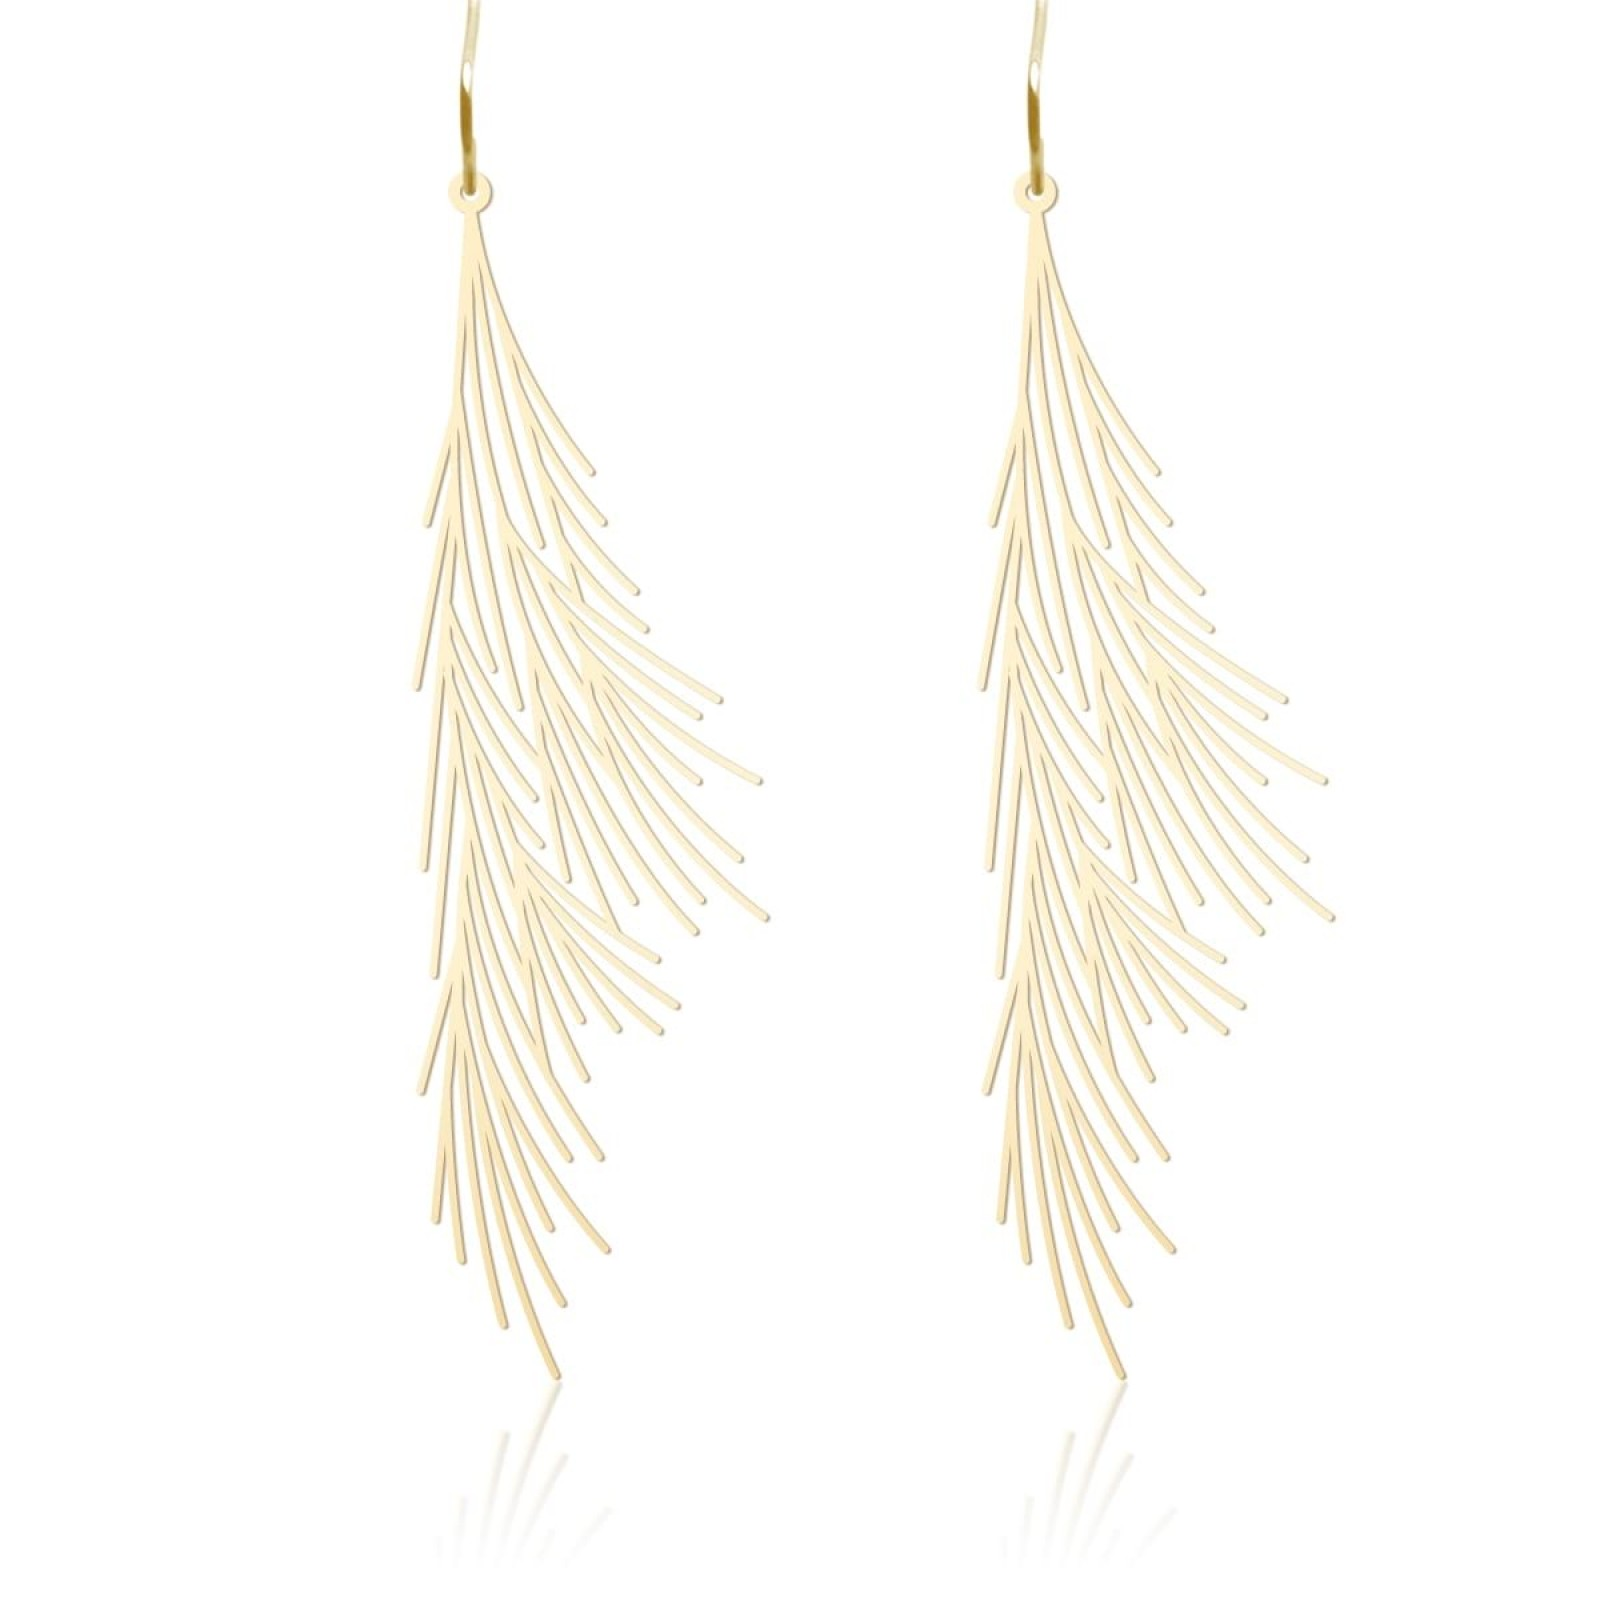 Common Reed Earrings M (Gold) - Moorigin